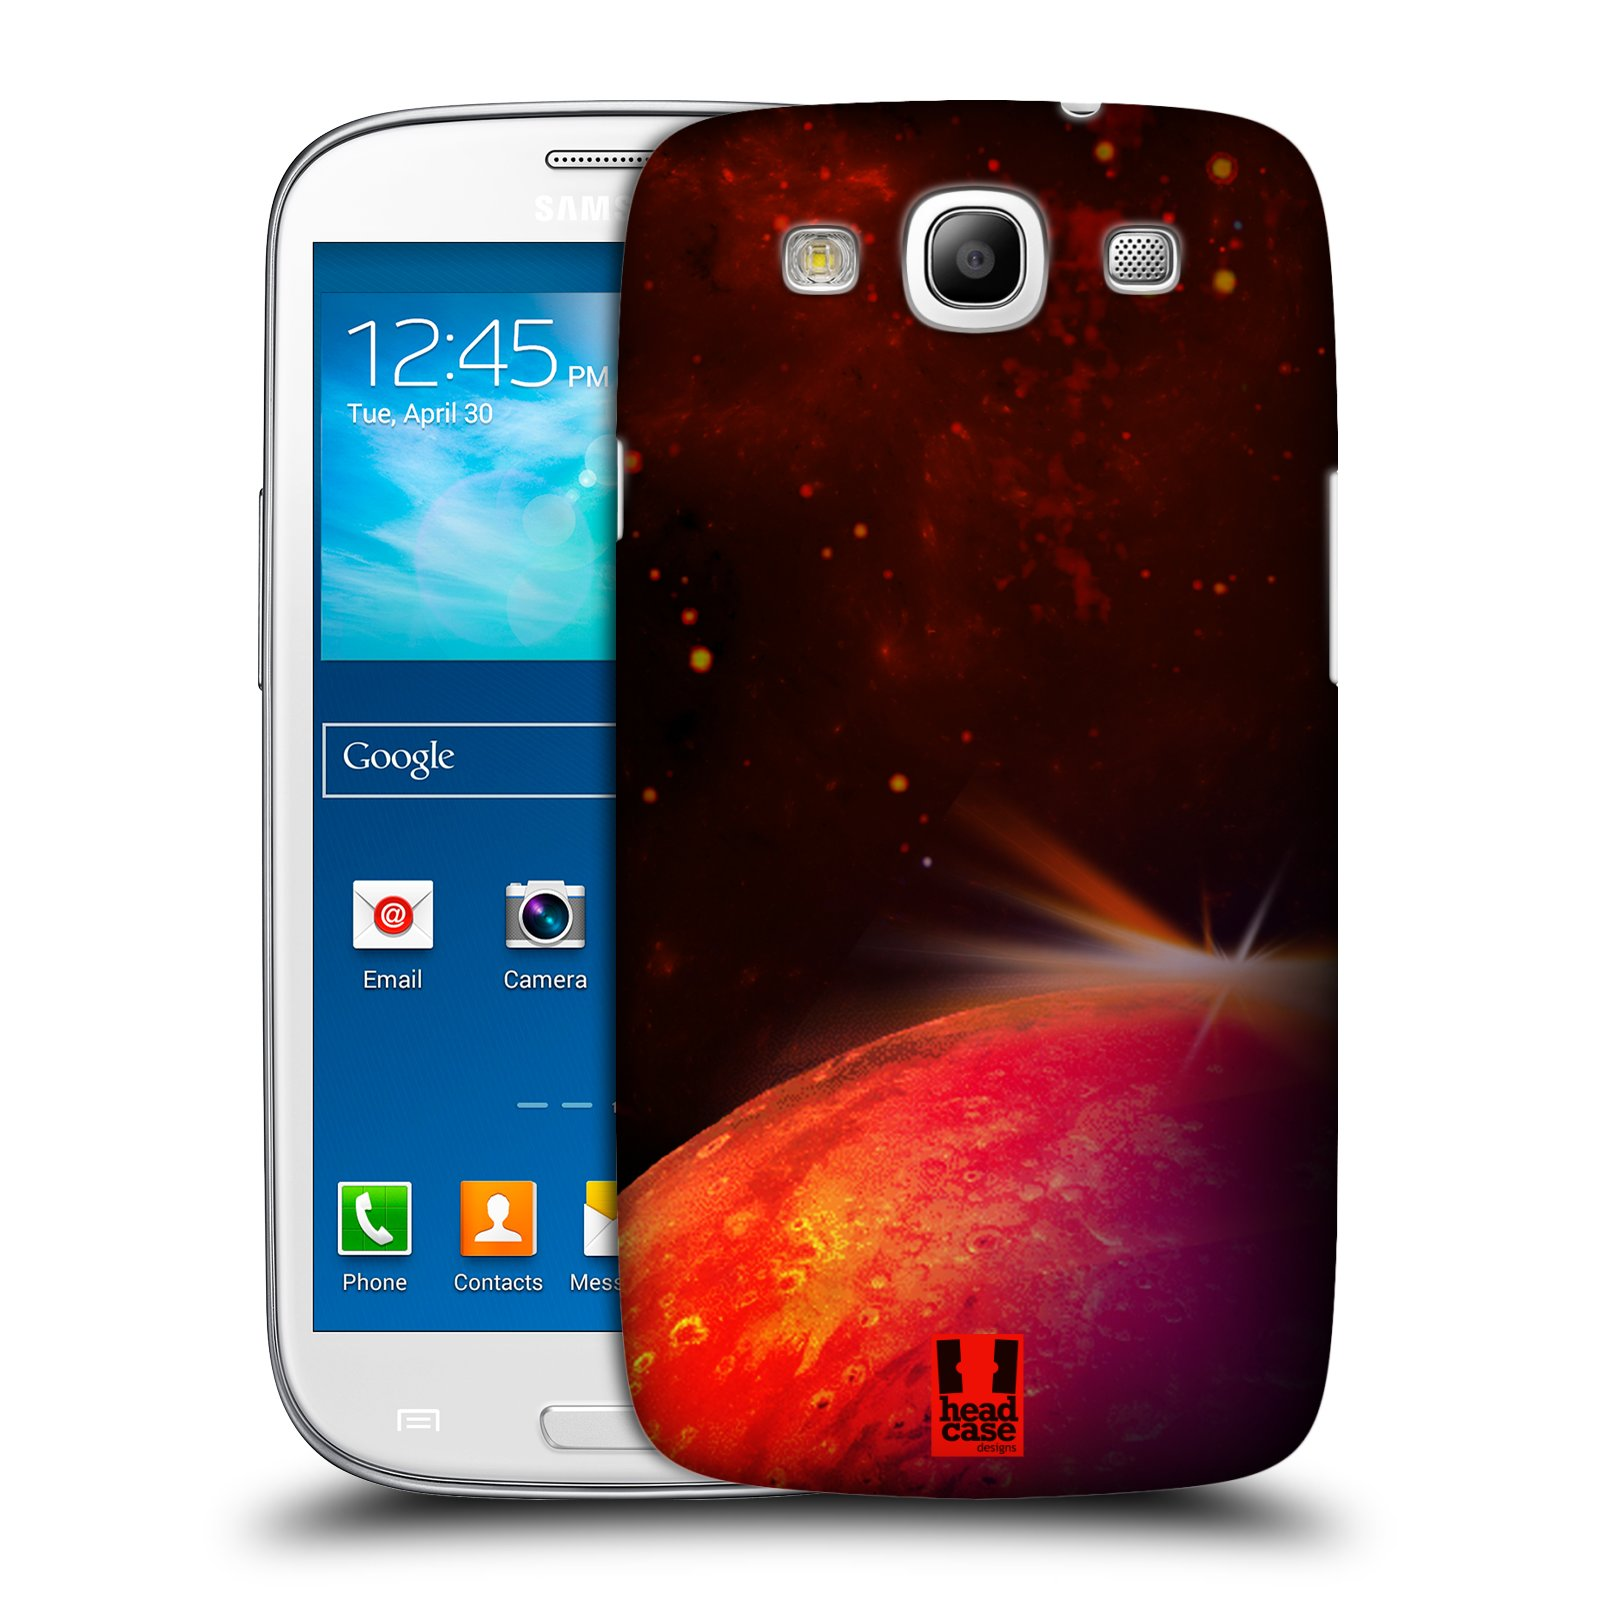 HEAD CASE DESIGNS SPACE WONDERS SET 1 CASE FOR SAMSUNG GALAXY S3 III I9300